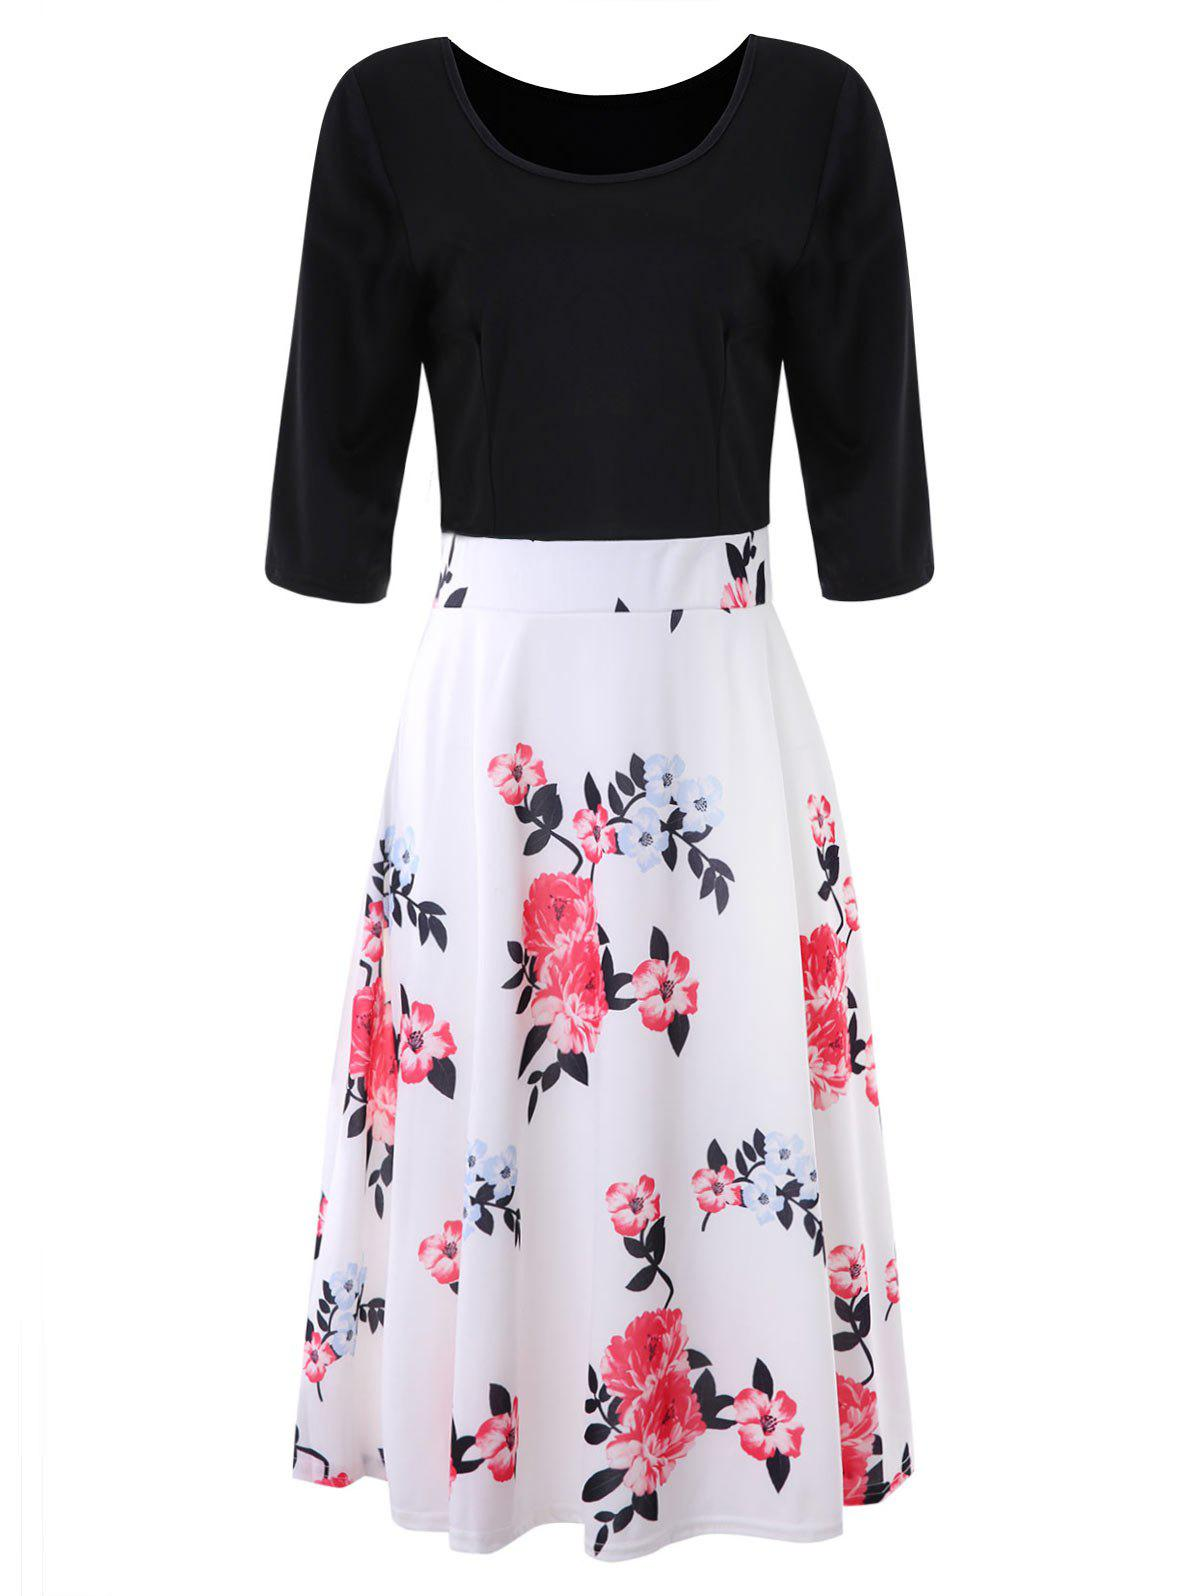 Cheap Vintage Floral Print Sewing Dress